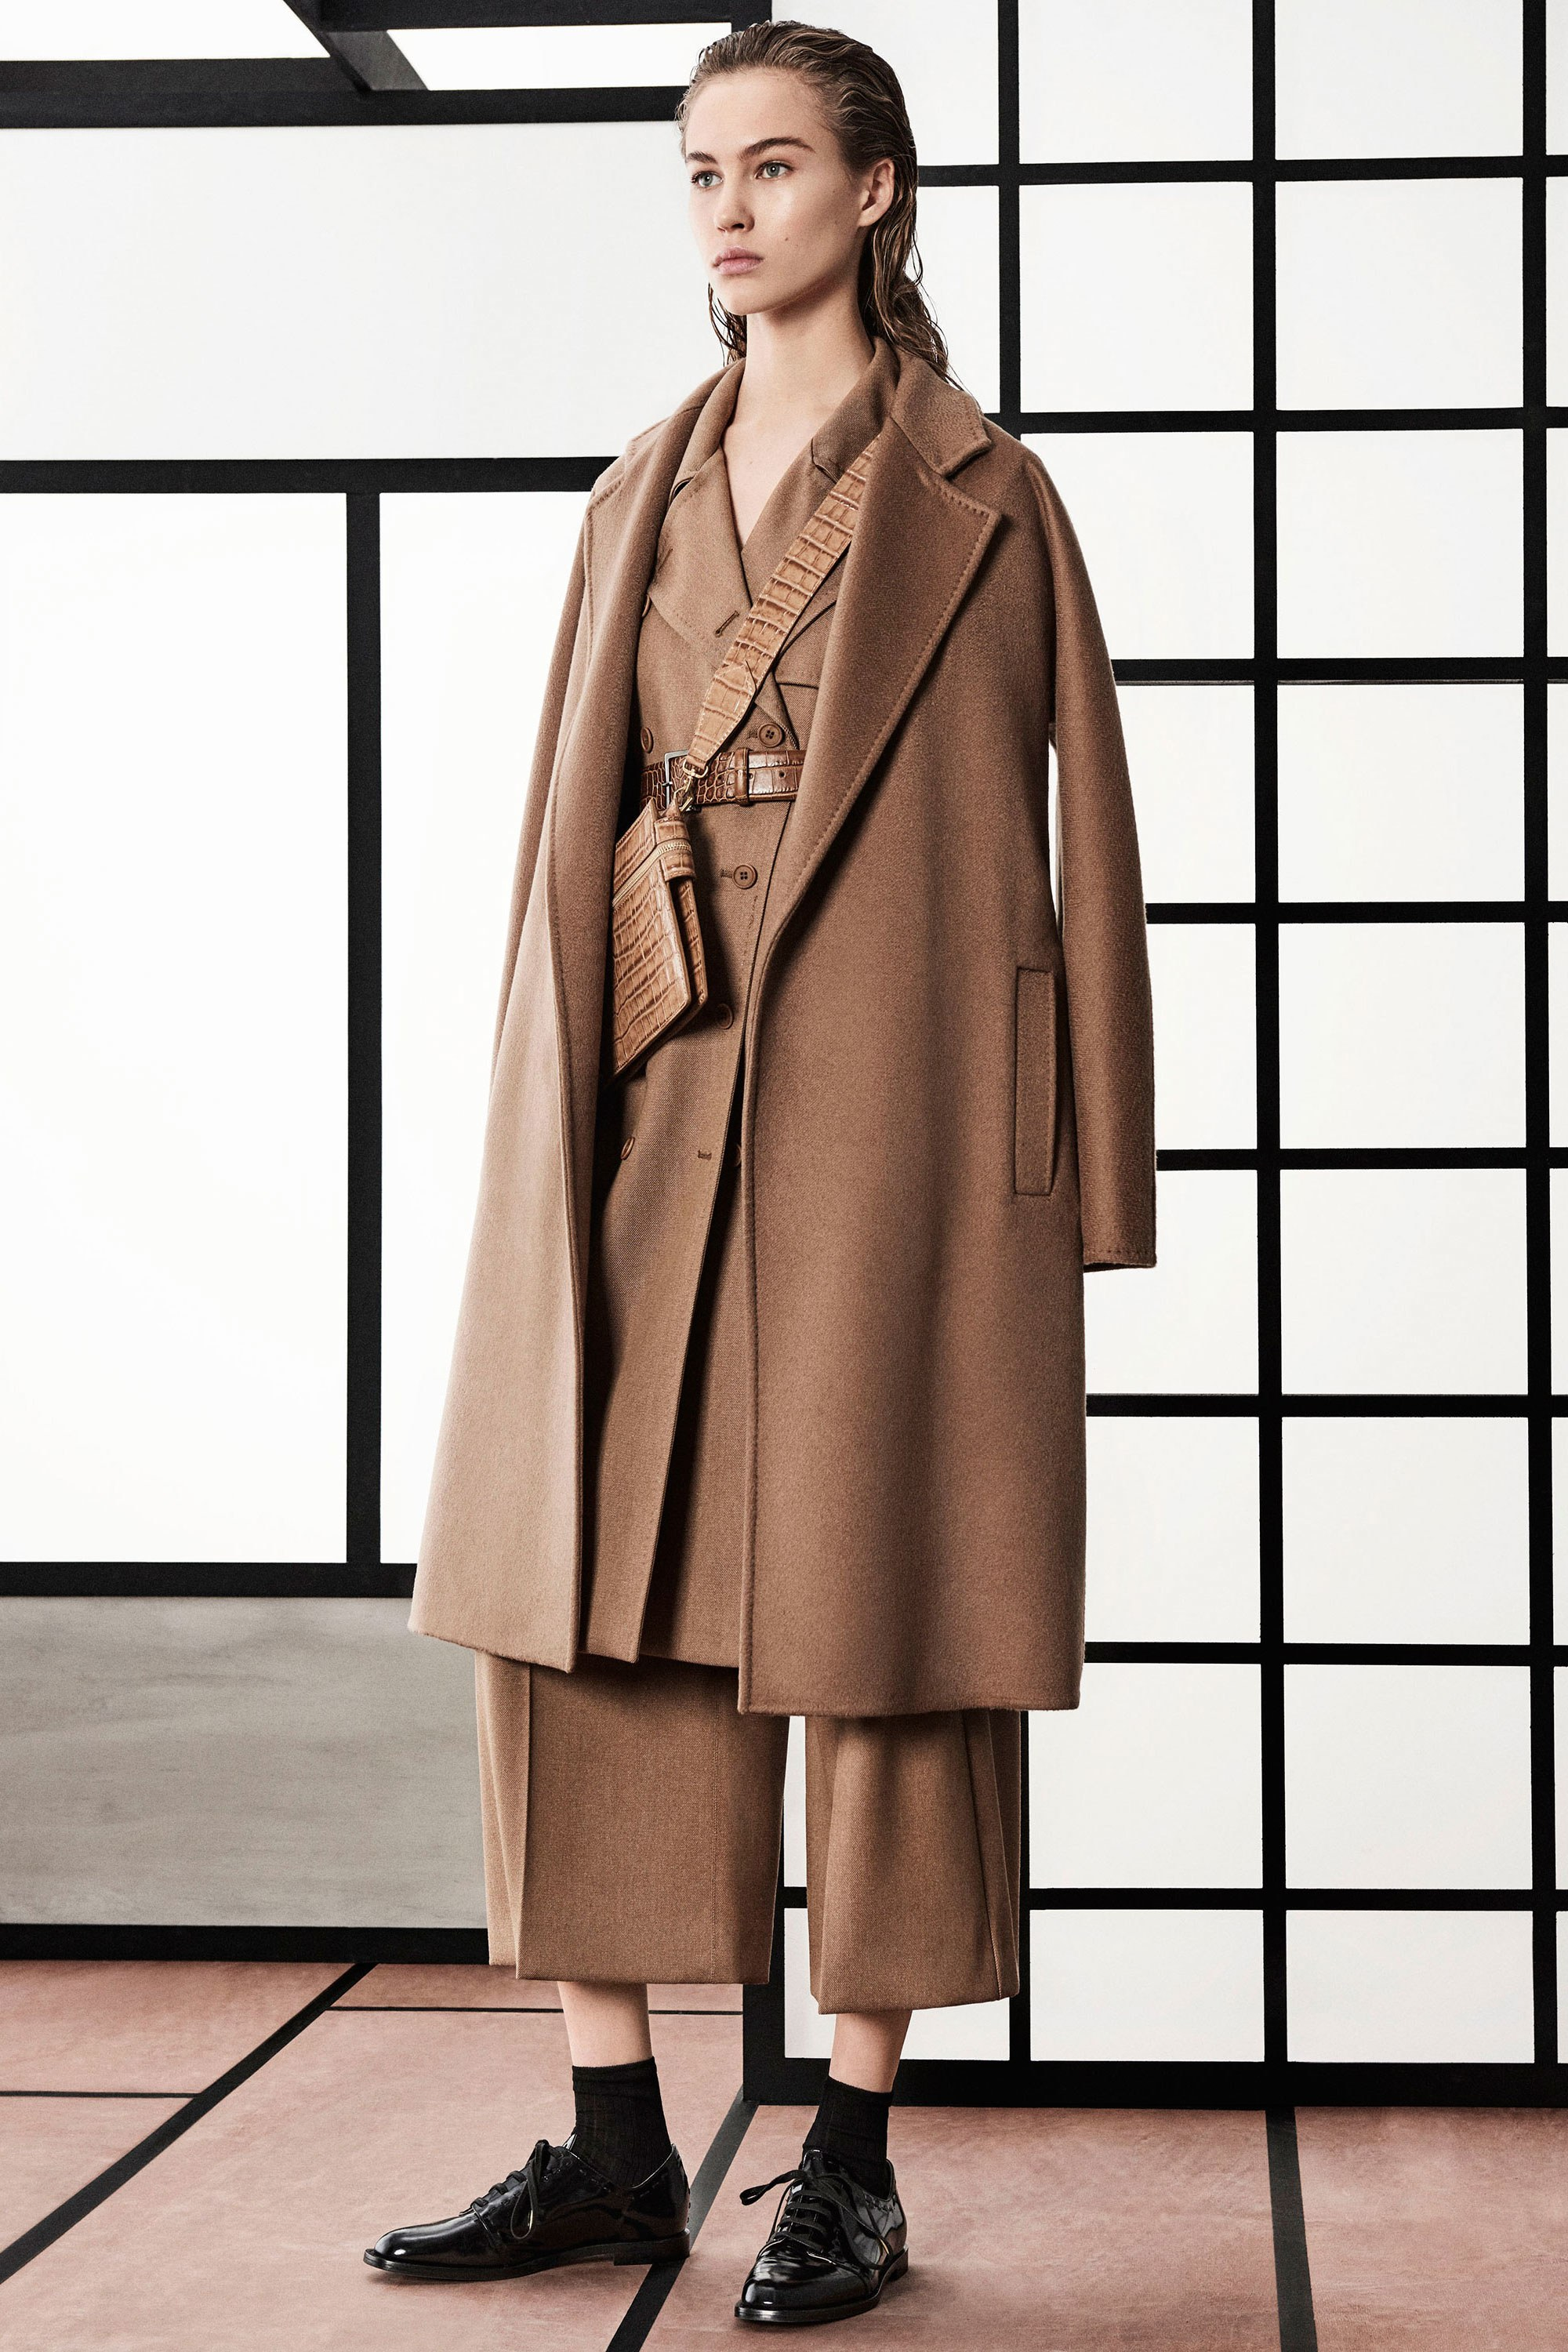 Oversized Coats Winter 2018 - Max Mara Pre-Fall 2018